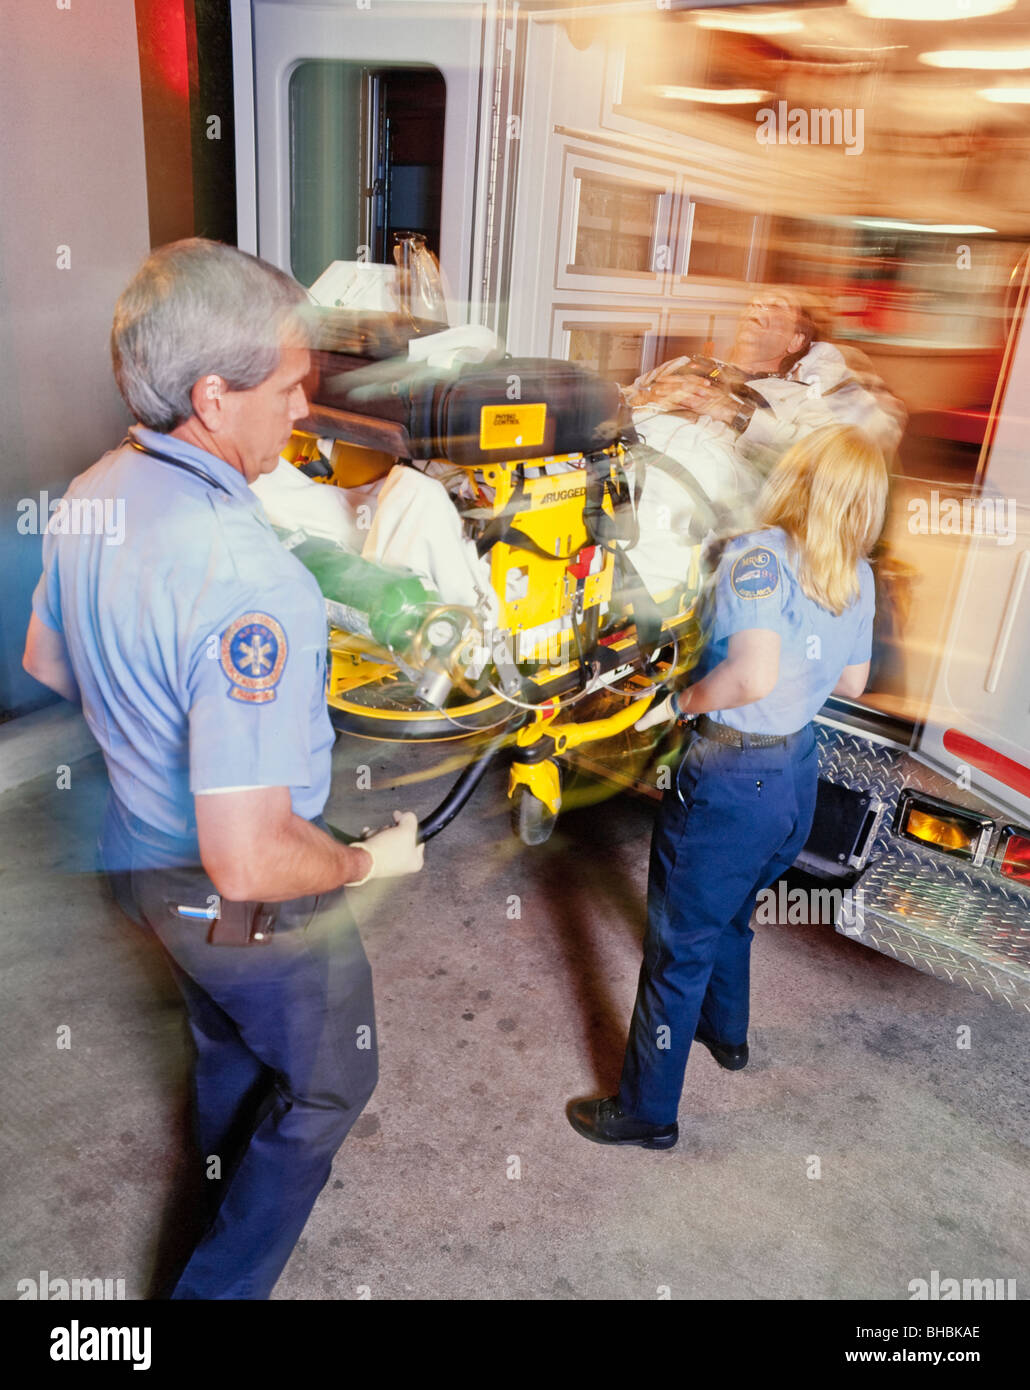 Emergency medical technicians loading patient into ambulance - Stock Image